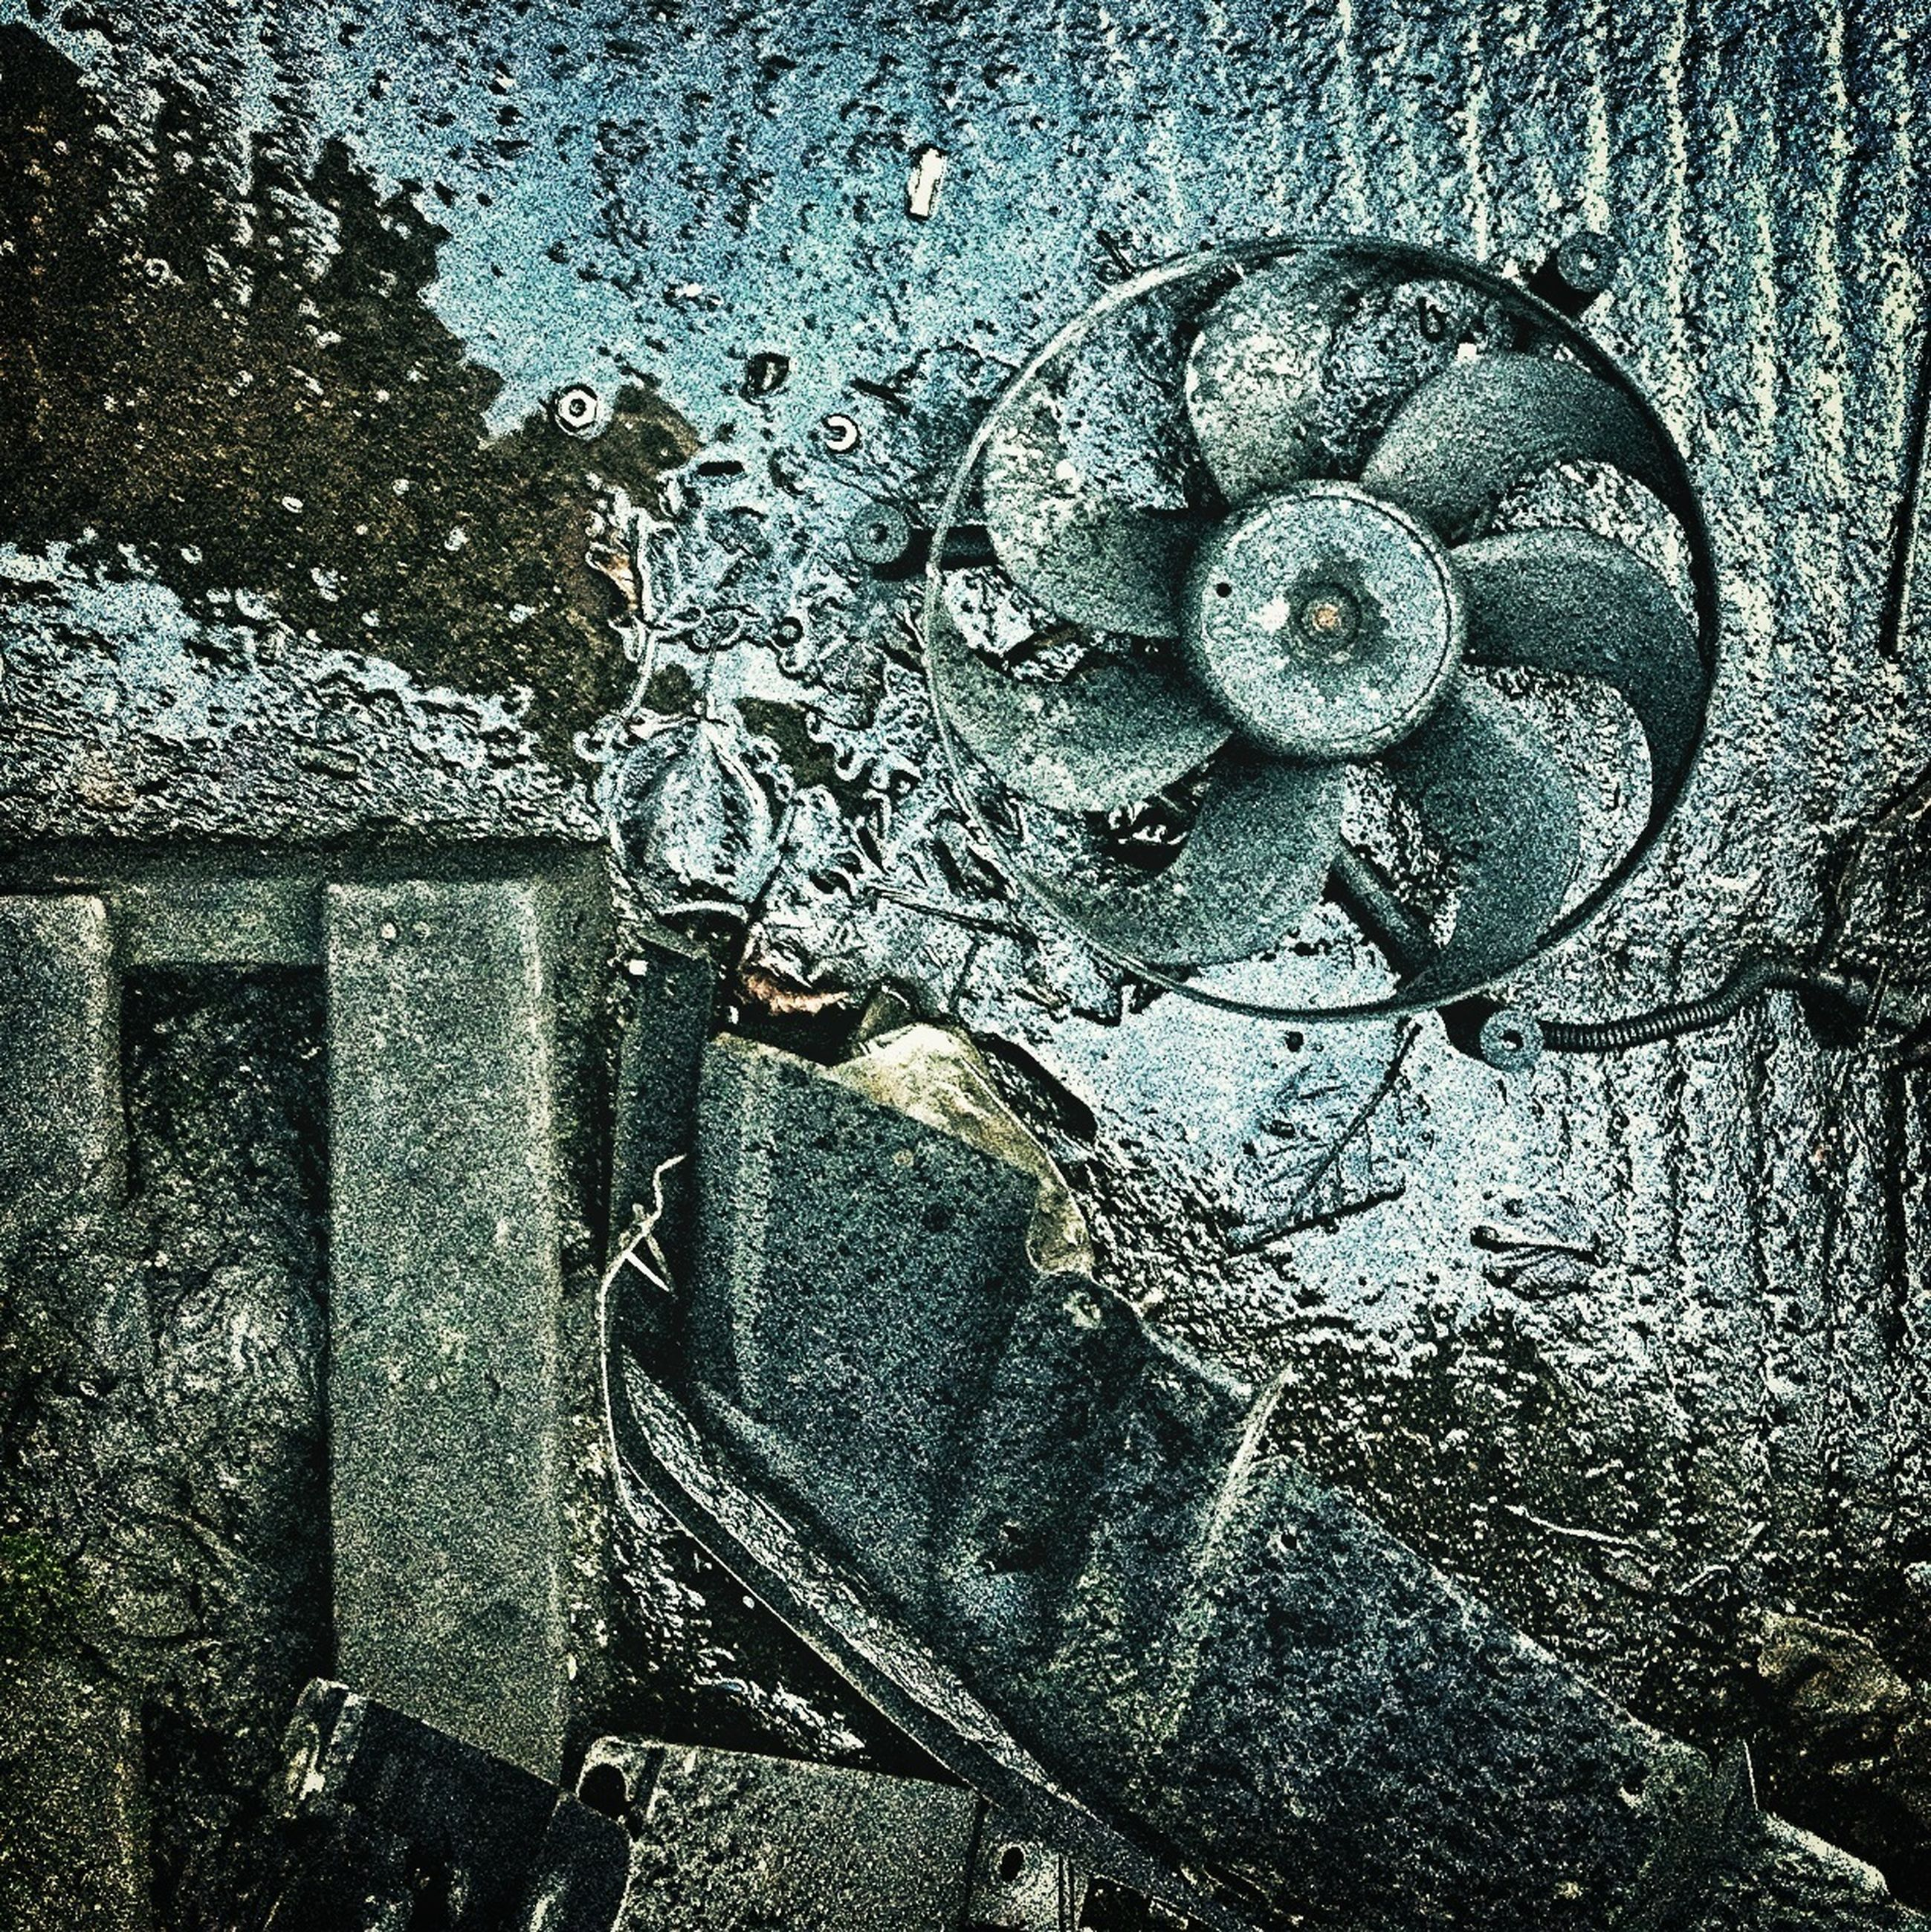 full frame, backgrounds, water, high angle view, close-up, pattern, wet, metal, indoors, textured, old, design, drop, wall - building feature, metallic, built structure, day, no people, rusty